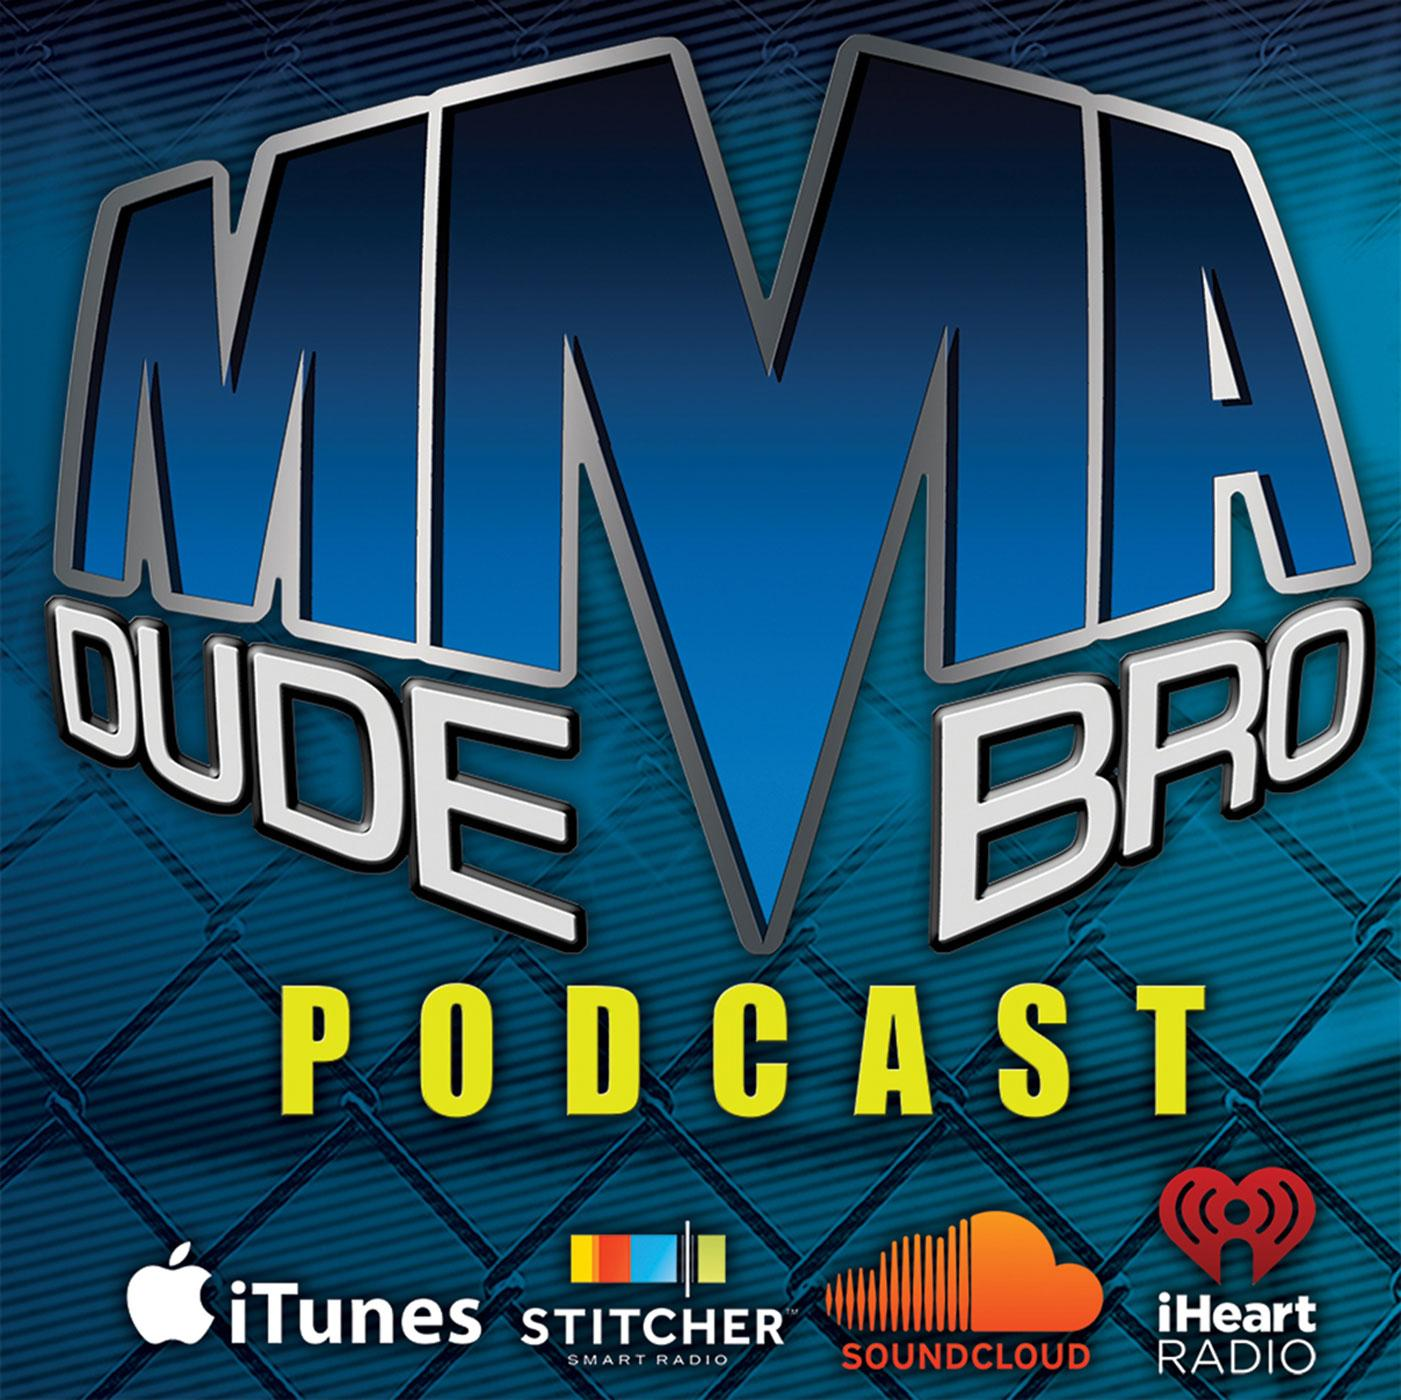 MMA Dude Bro - Episode 113 with guest Nick Newell